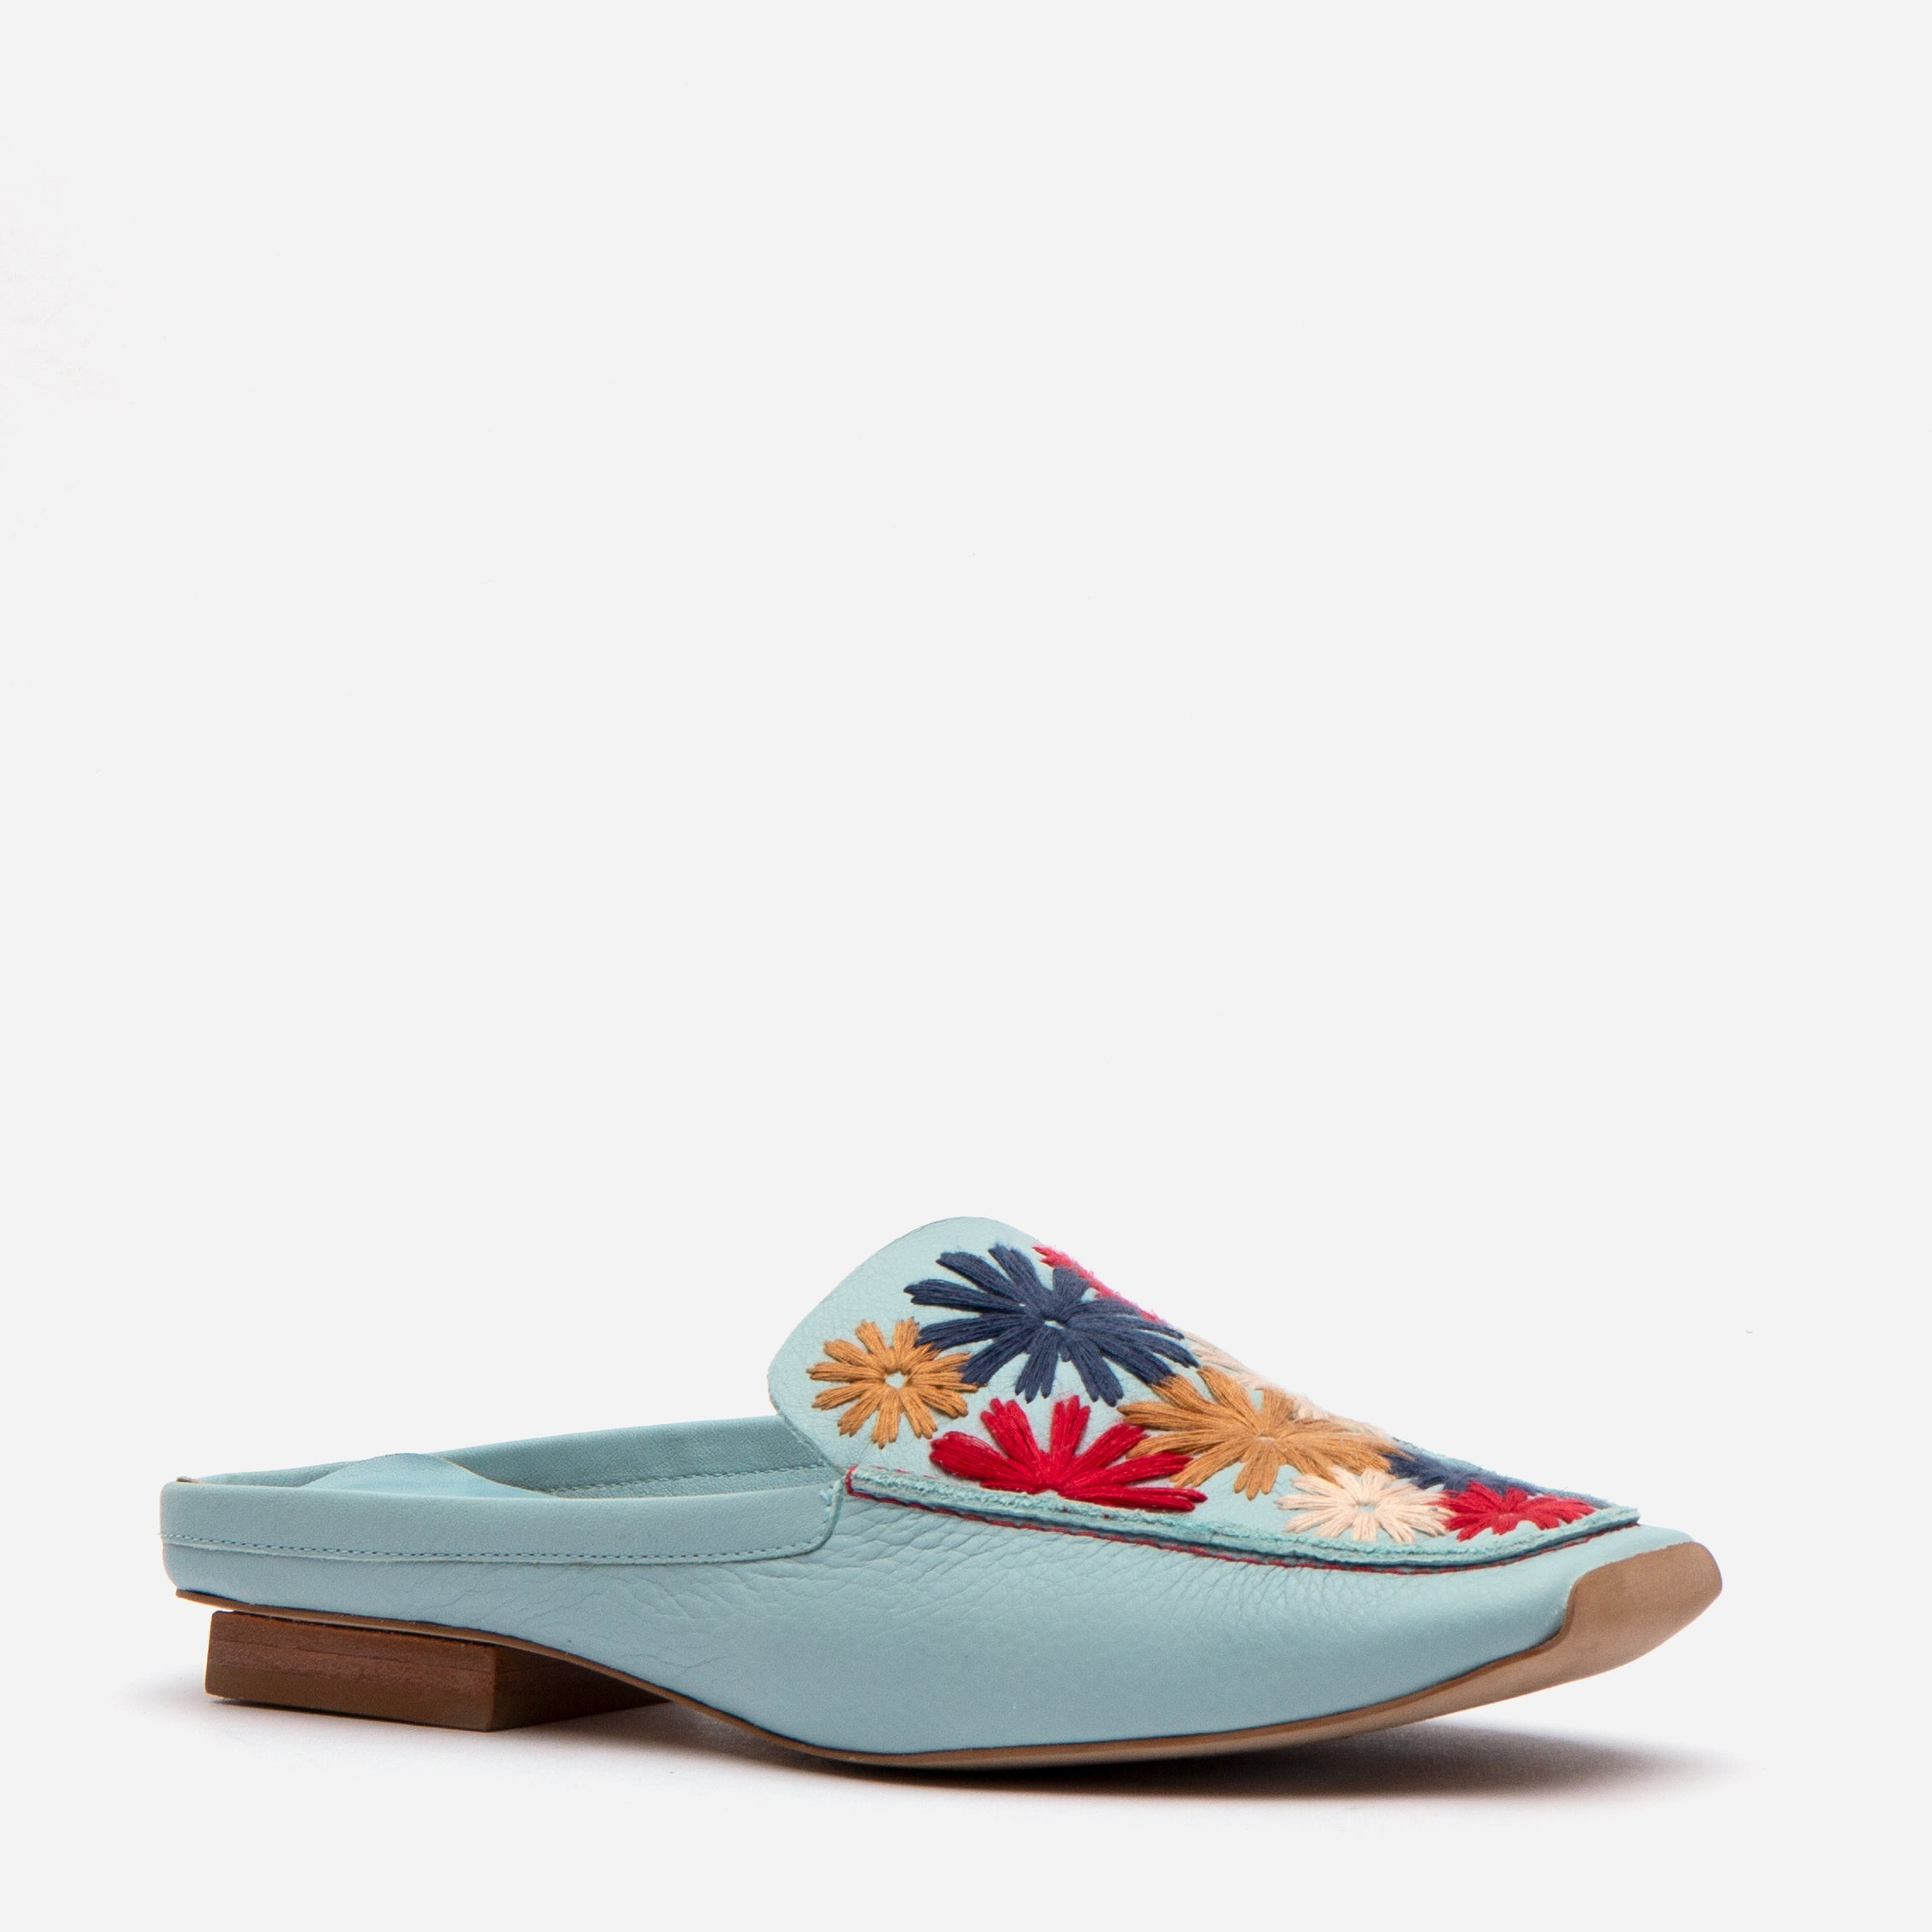 Elyce Mules Floral Embroidery Light Blue